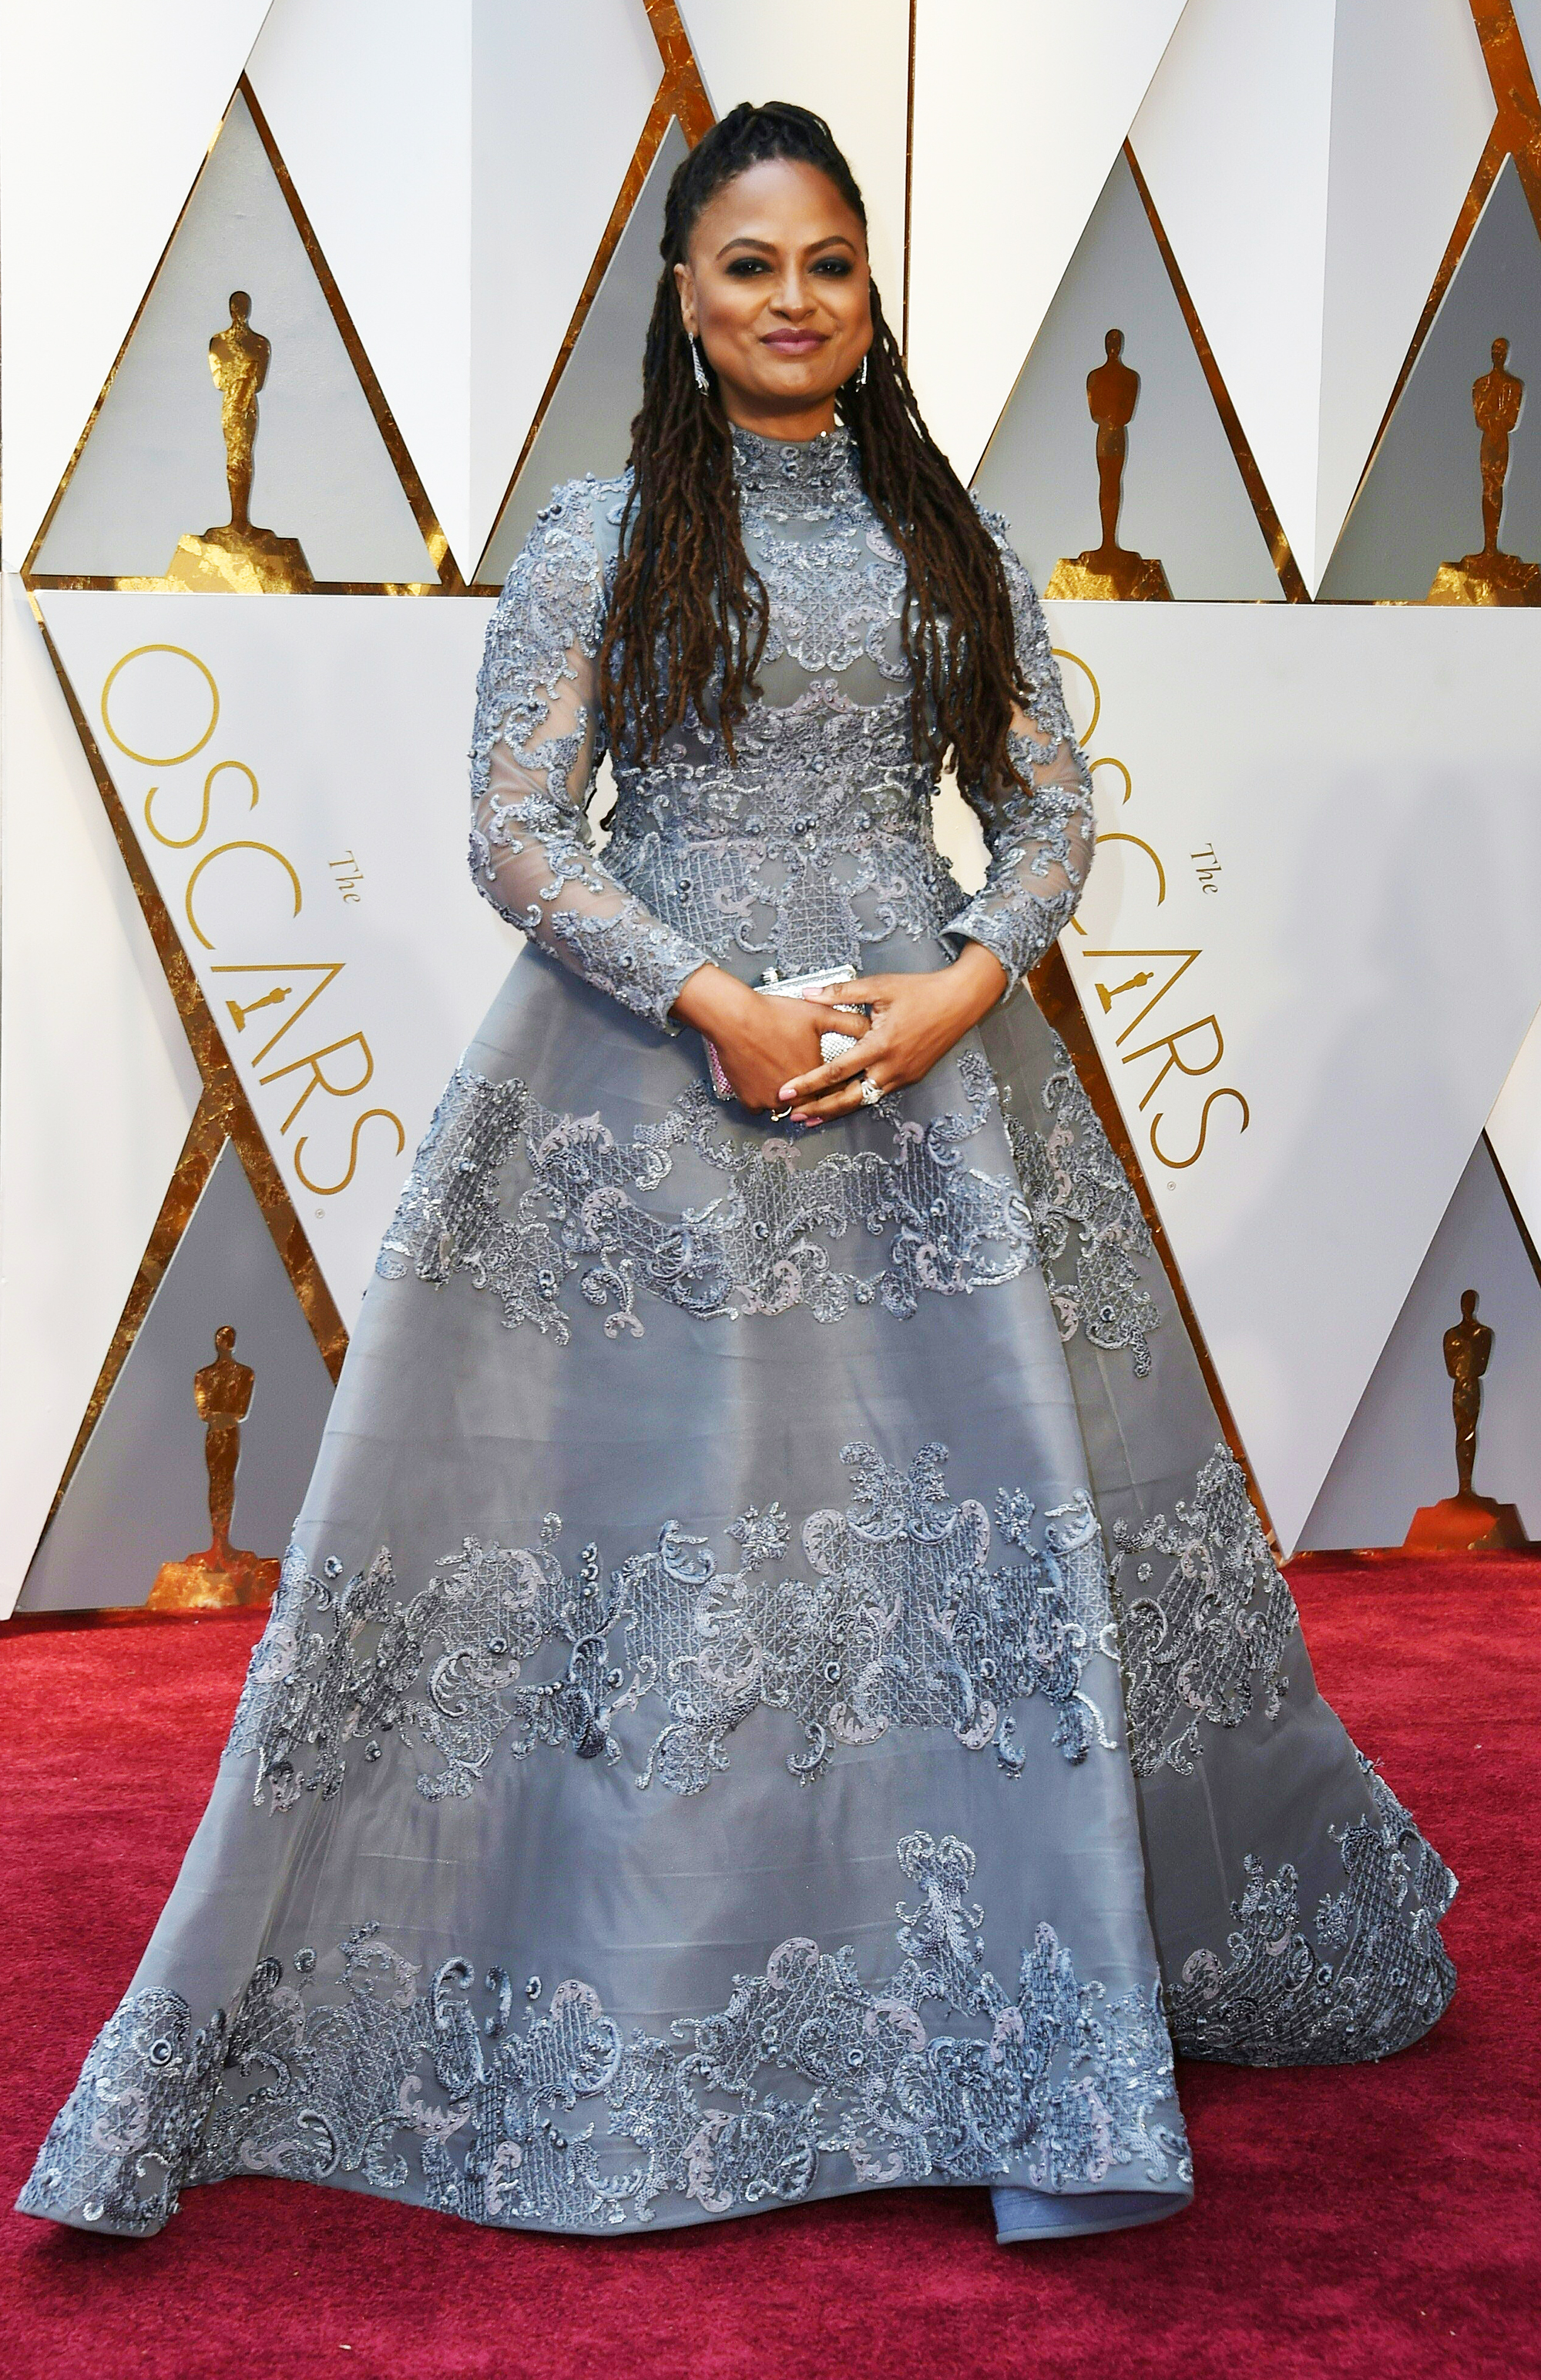 Ava DuVernay on the red carpet for the 89th Oscars, on Feb. 26, 2017 in Hollywood, Calif.